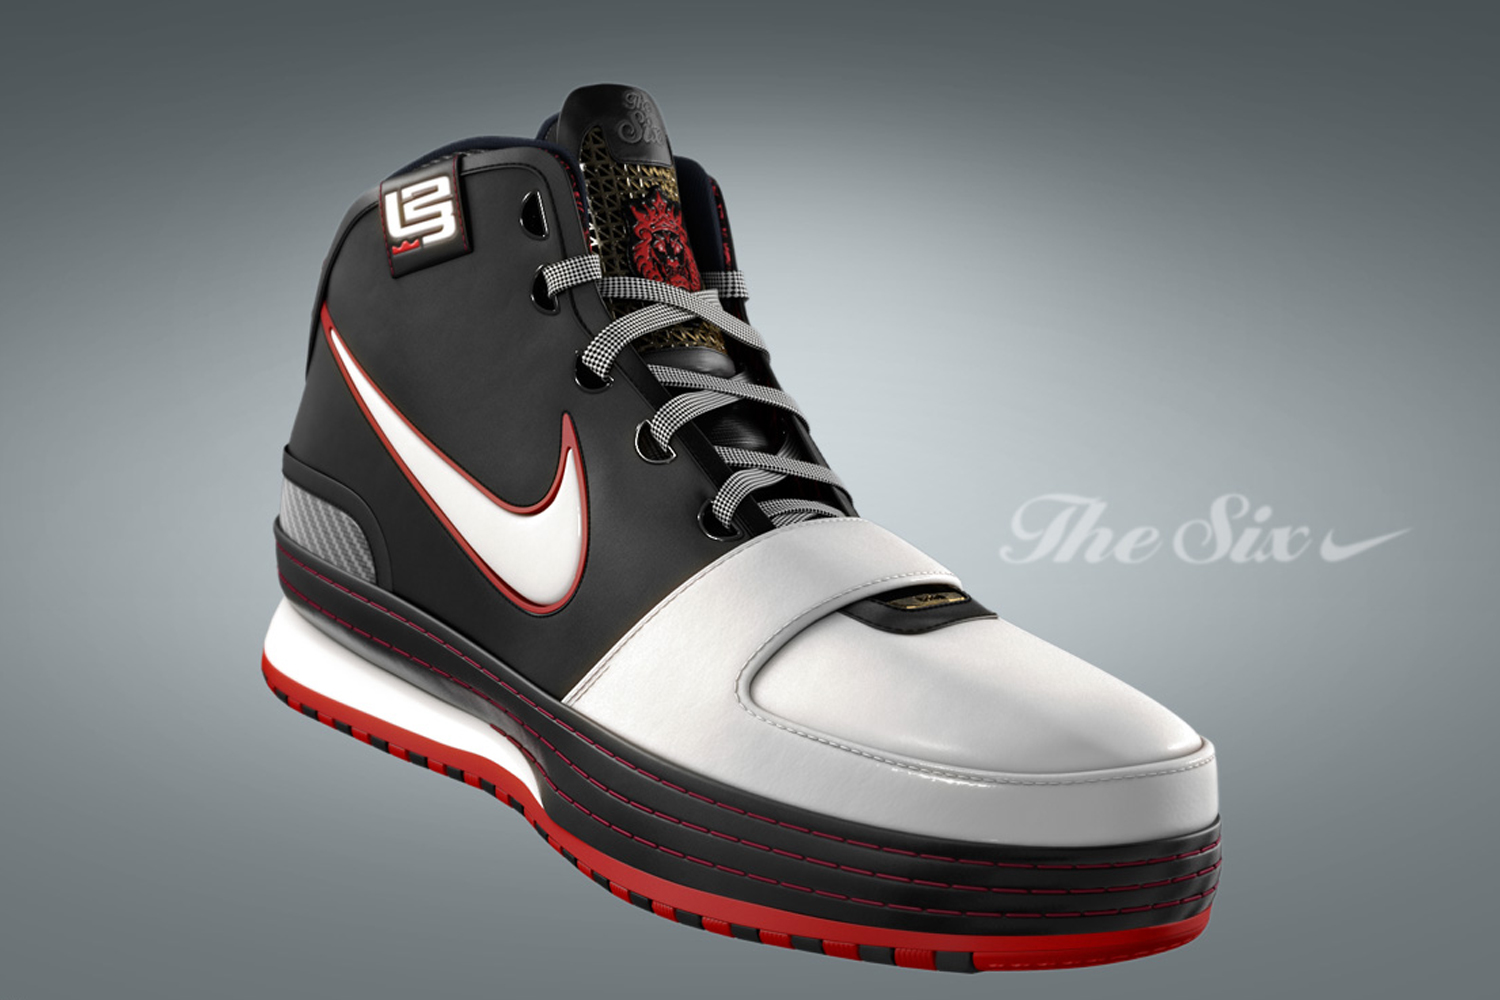 The ankle strap is gone. There is no Foamposite. The Zoom LeBron VI, designed by Ken Link, the man who handled II-VI, went classic. The leather upper—still with a strap-like look across the midfoot—offers clean lines, while the fun happens on the collar, where graffiti art spells out some of LeBron's favorite mantras. The full-length Zoom Air and double-stack cushioning make their final appearance in the VI.